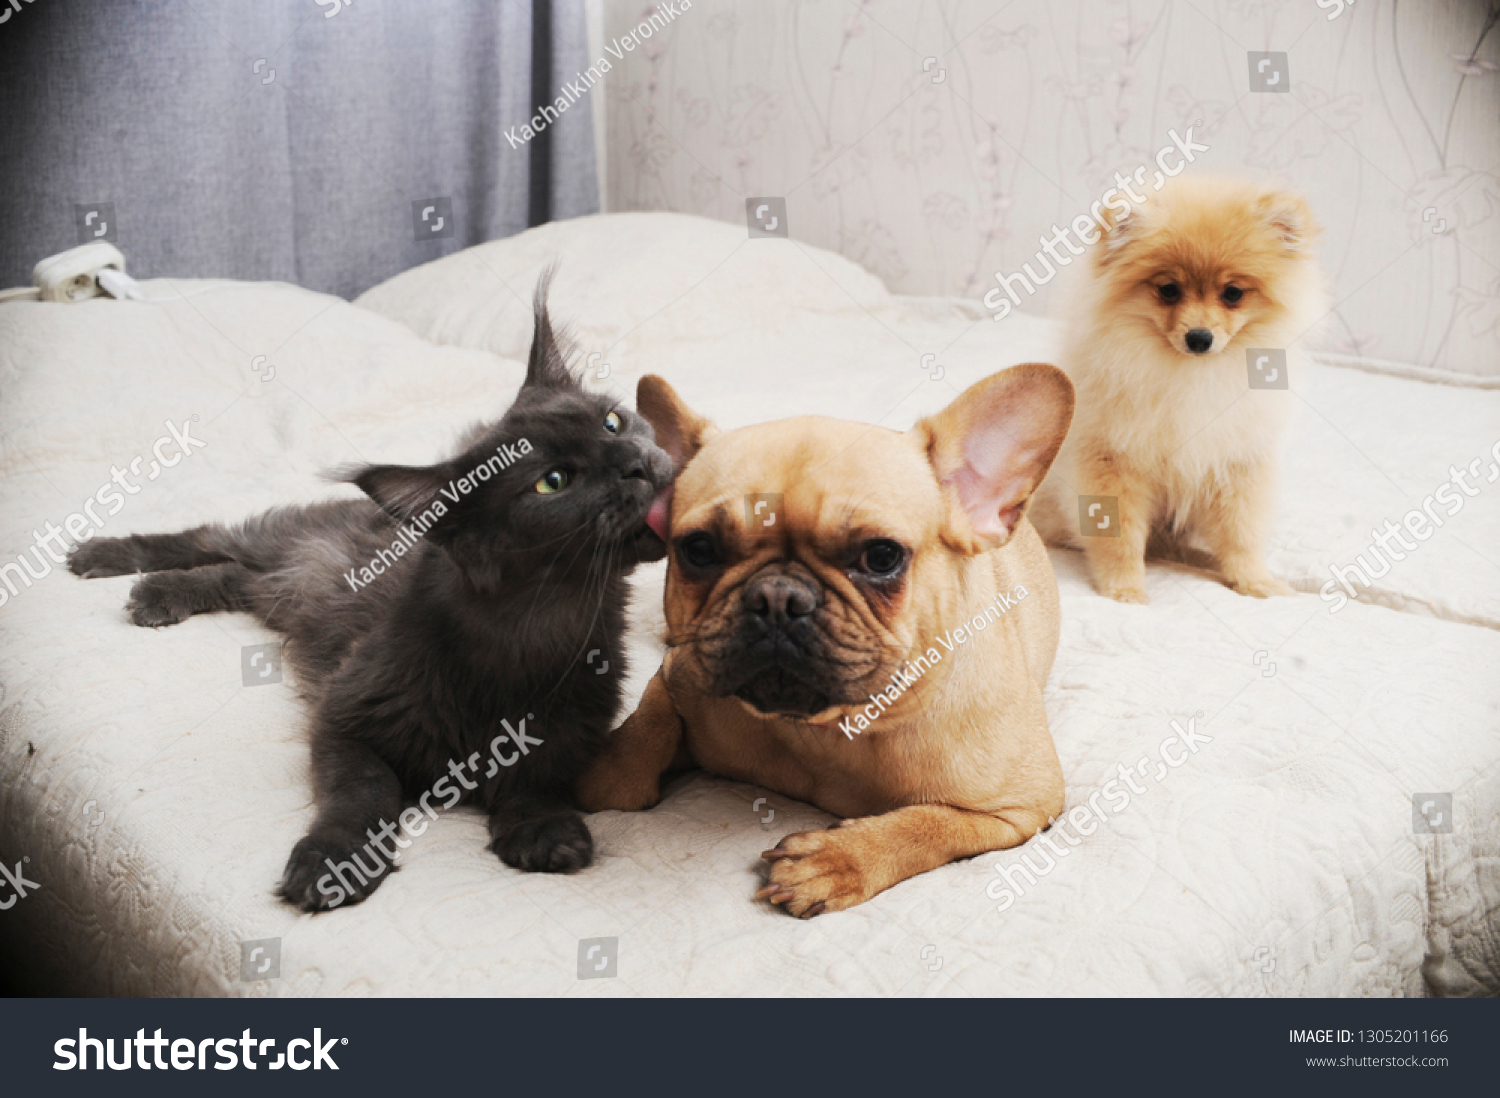 Adorable Dogs Cute Cat Lying Together Stock Photo Edit Now 1305201166